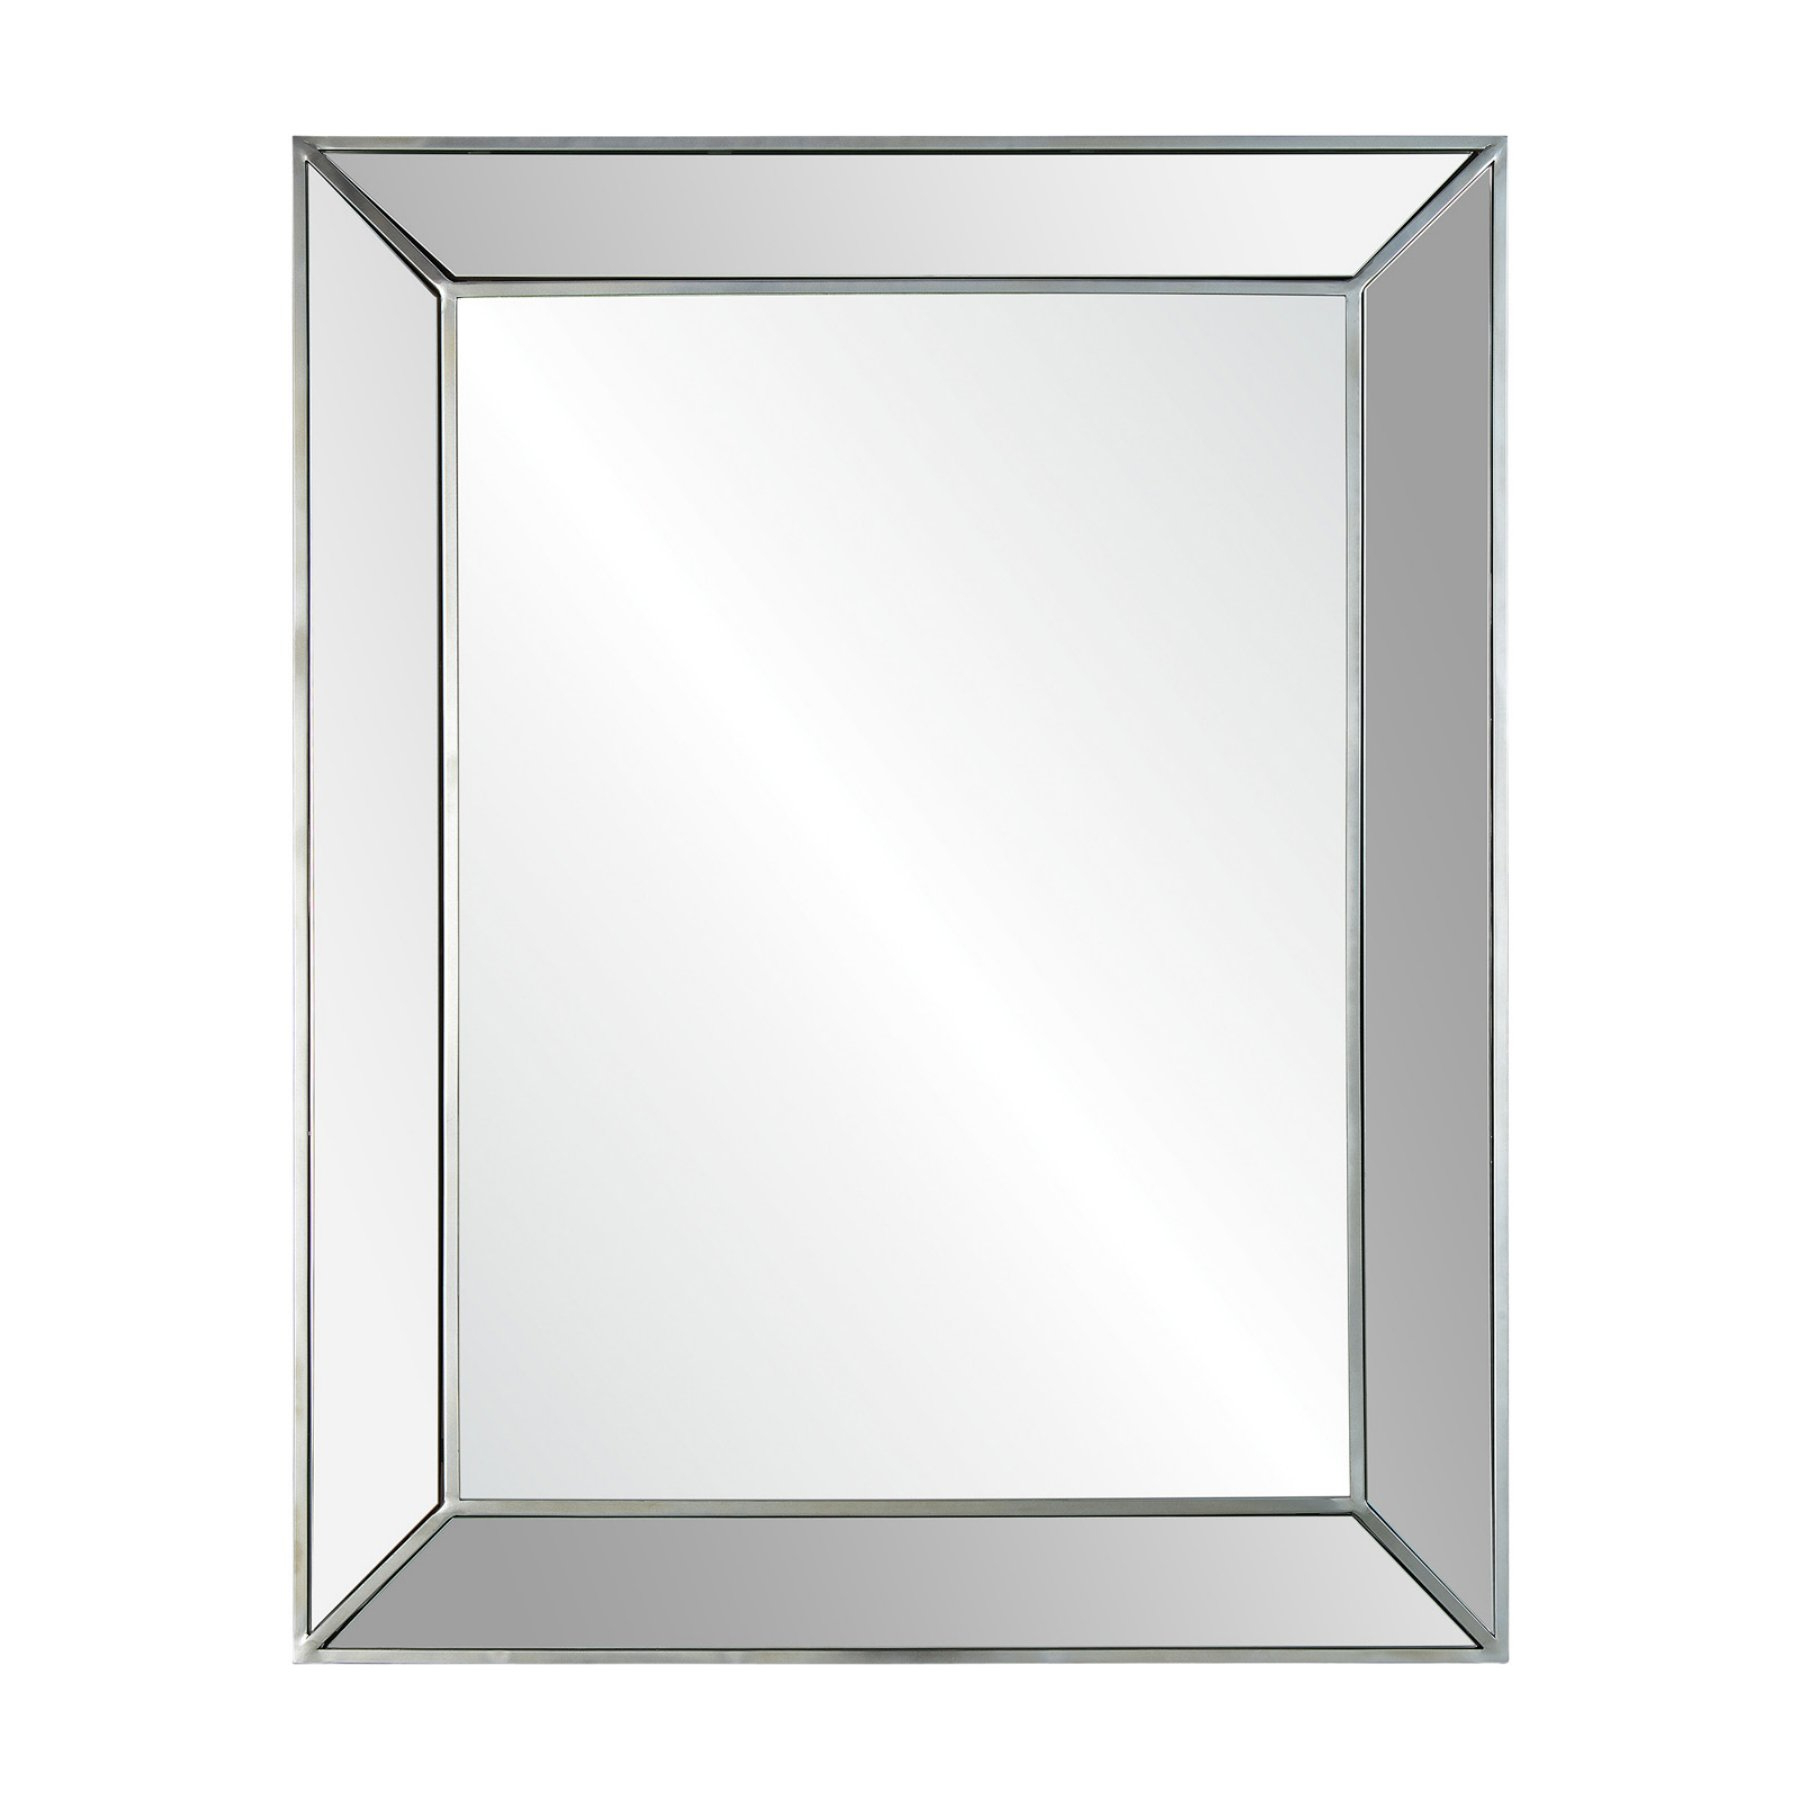 Mirror Pertaining To Koeller Industrial Metal Wall Mirrors (View 11 of 20)